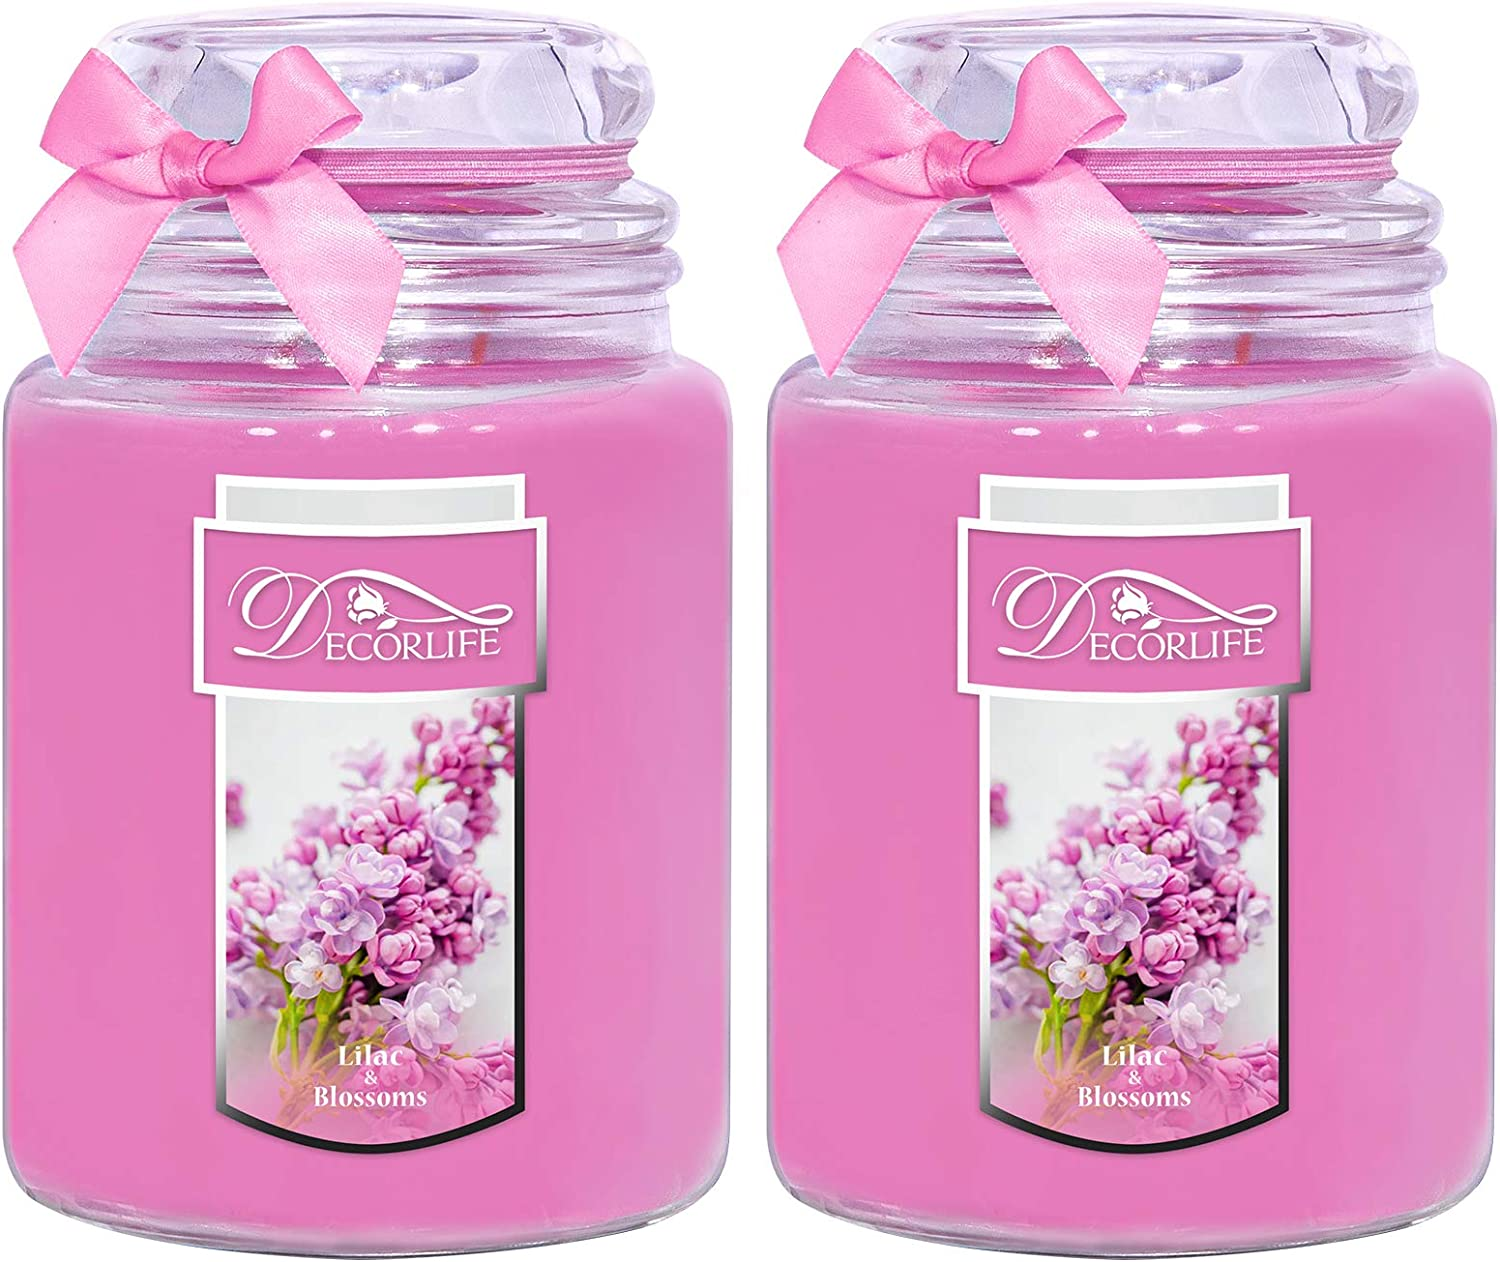 Decorlife 2-Pack Scented Candle, 22 oz Each Large Candle Jar, Nature Soy Wax Two Wicks with Over 100 Hrs Even Burn time, Candles Set for Home and Women (Lilac Blossoms)